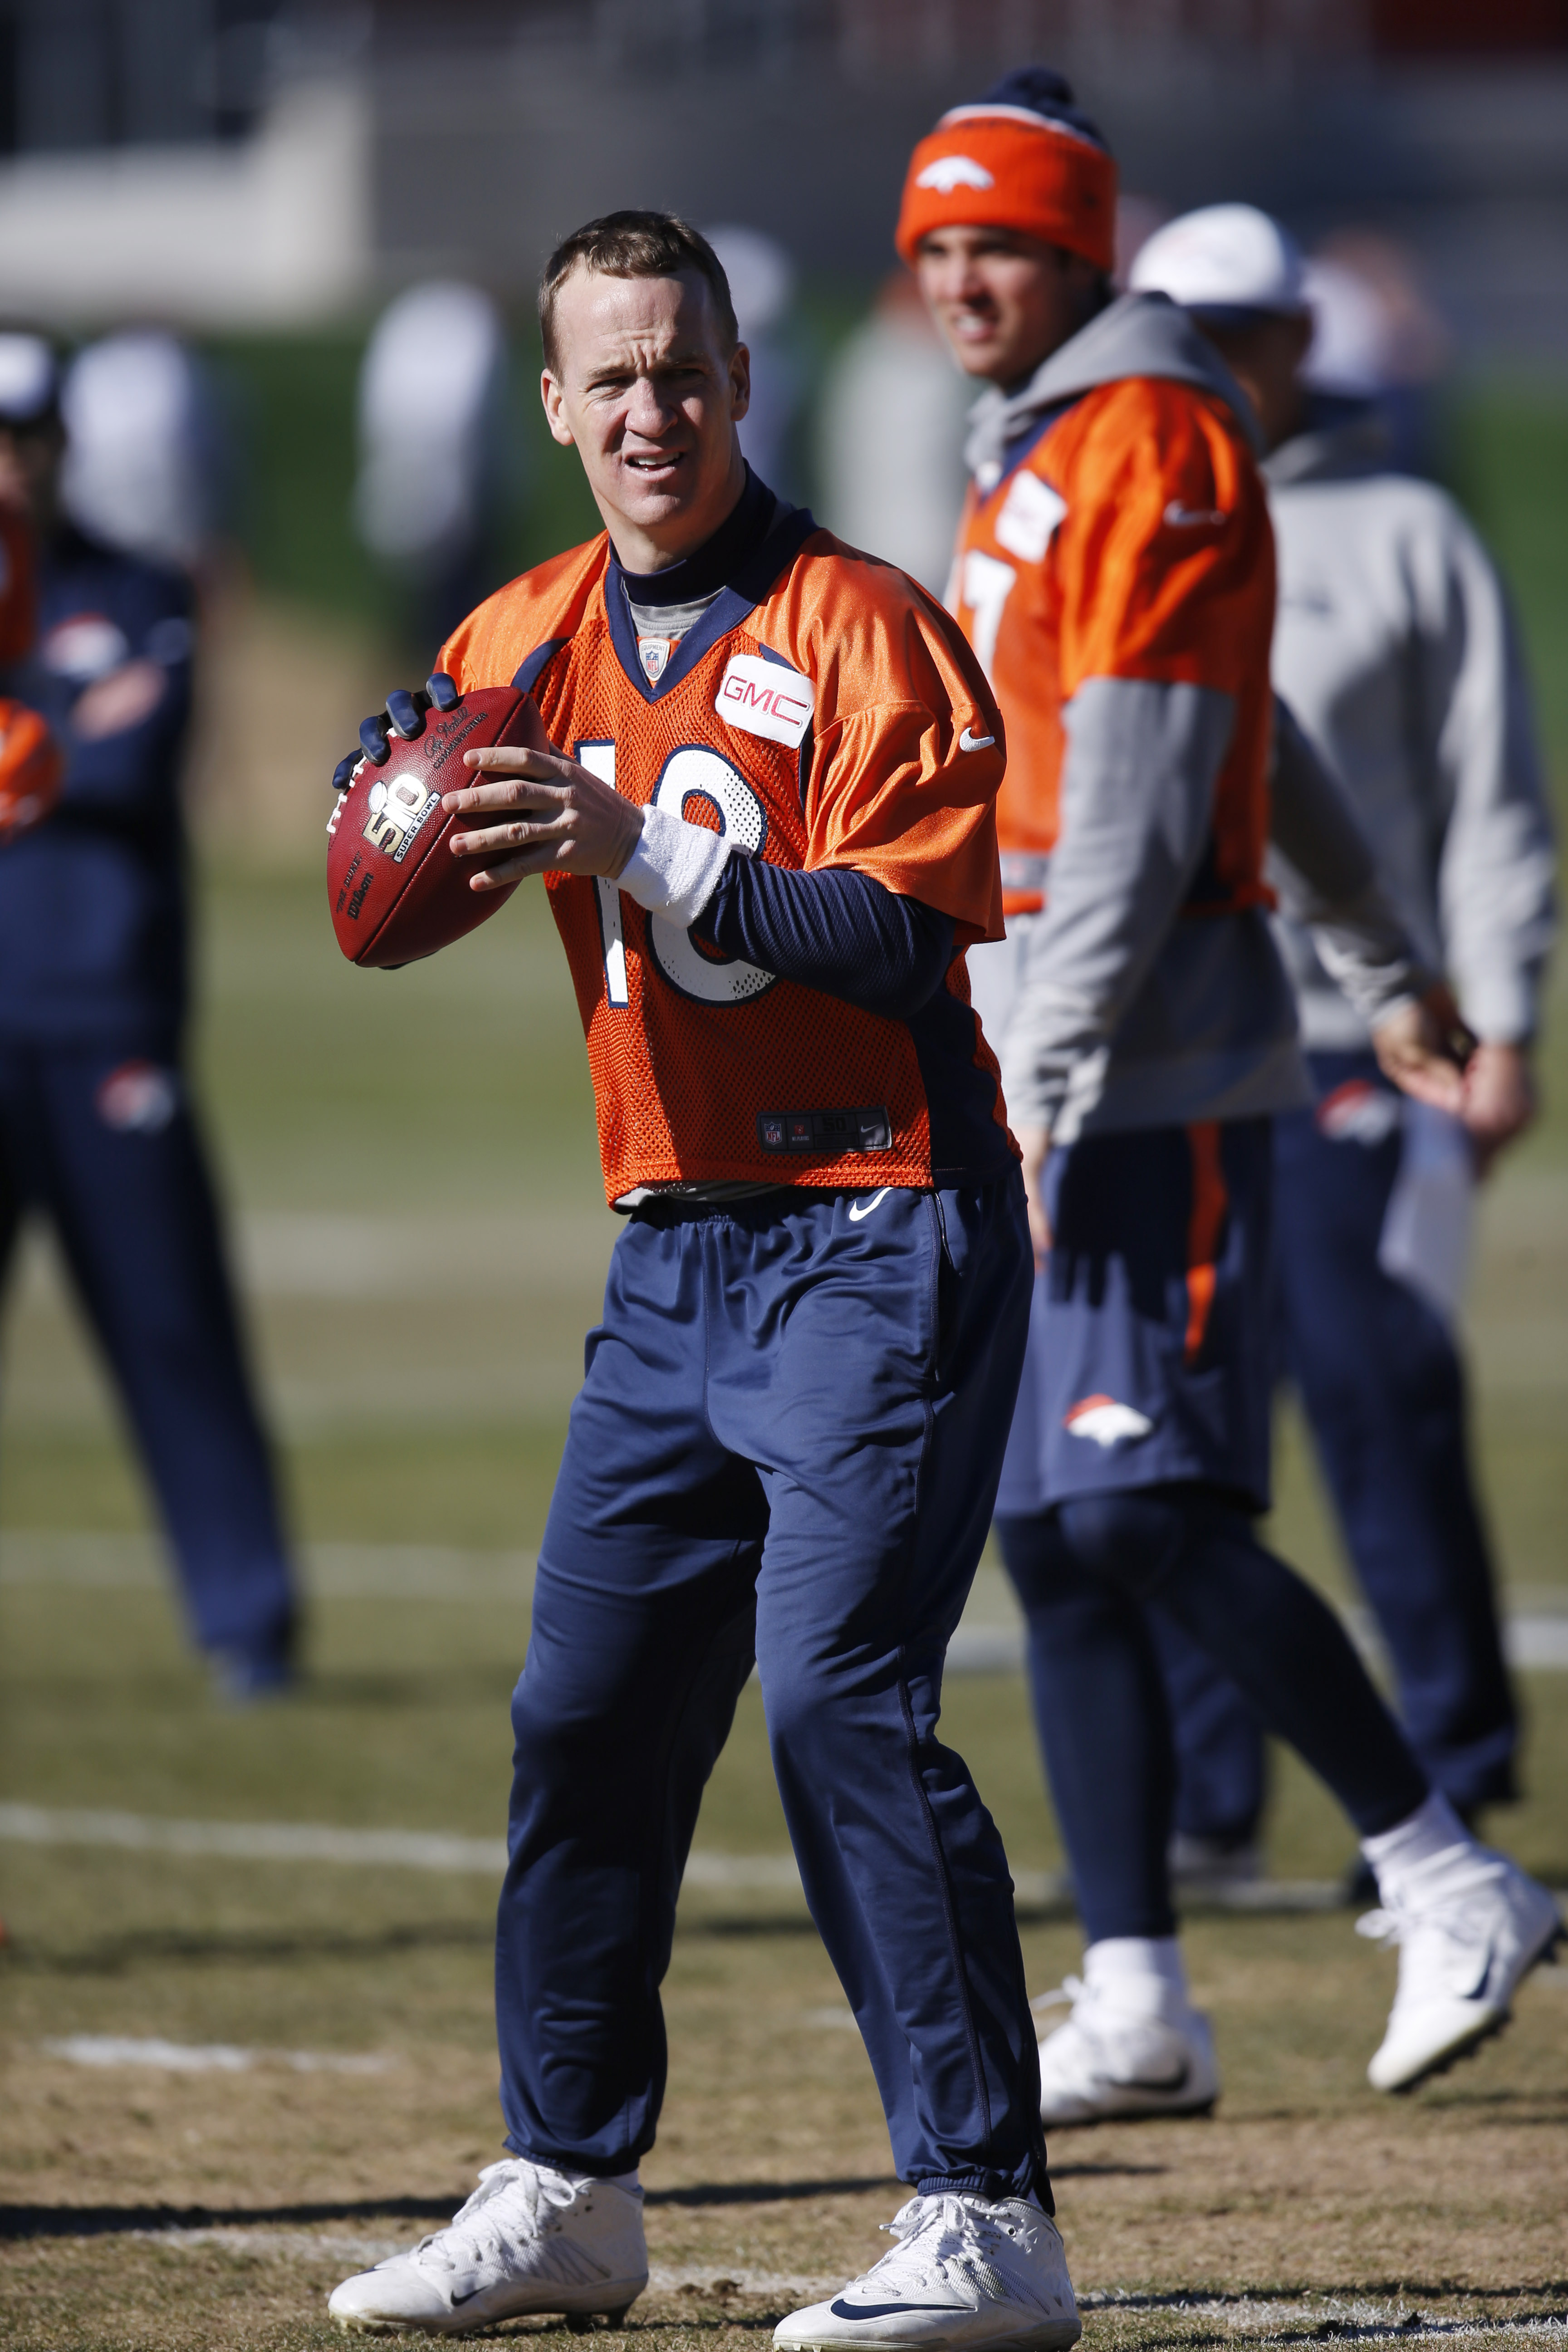 Denver Broncos quarterback Peyton Manning looks to throw during an NFL football practice at the team's headquarters Thursday, Jan. 28, 2016, in Englewood, Colo. The Broncos are preparing to face the Carolina Panthers in the Super Bowl. (AP Photo/David Zal